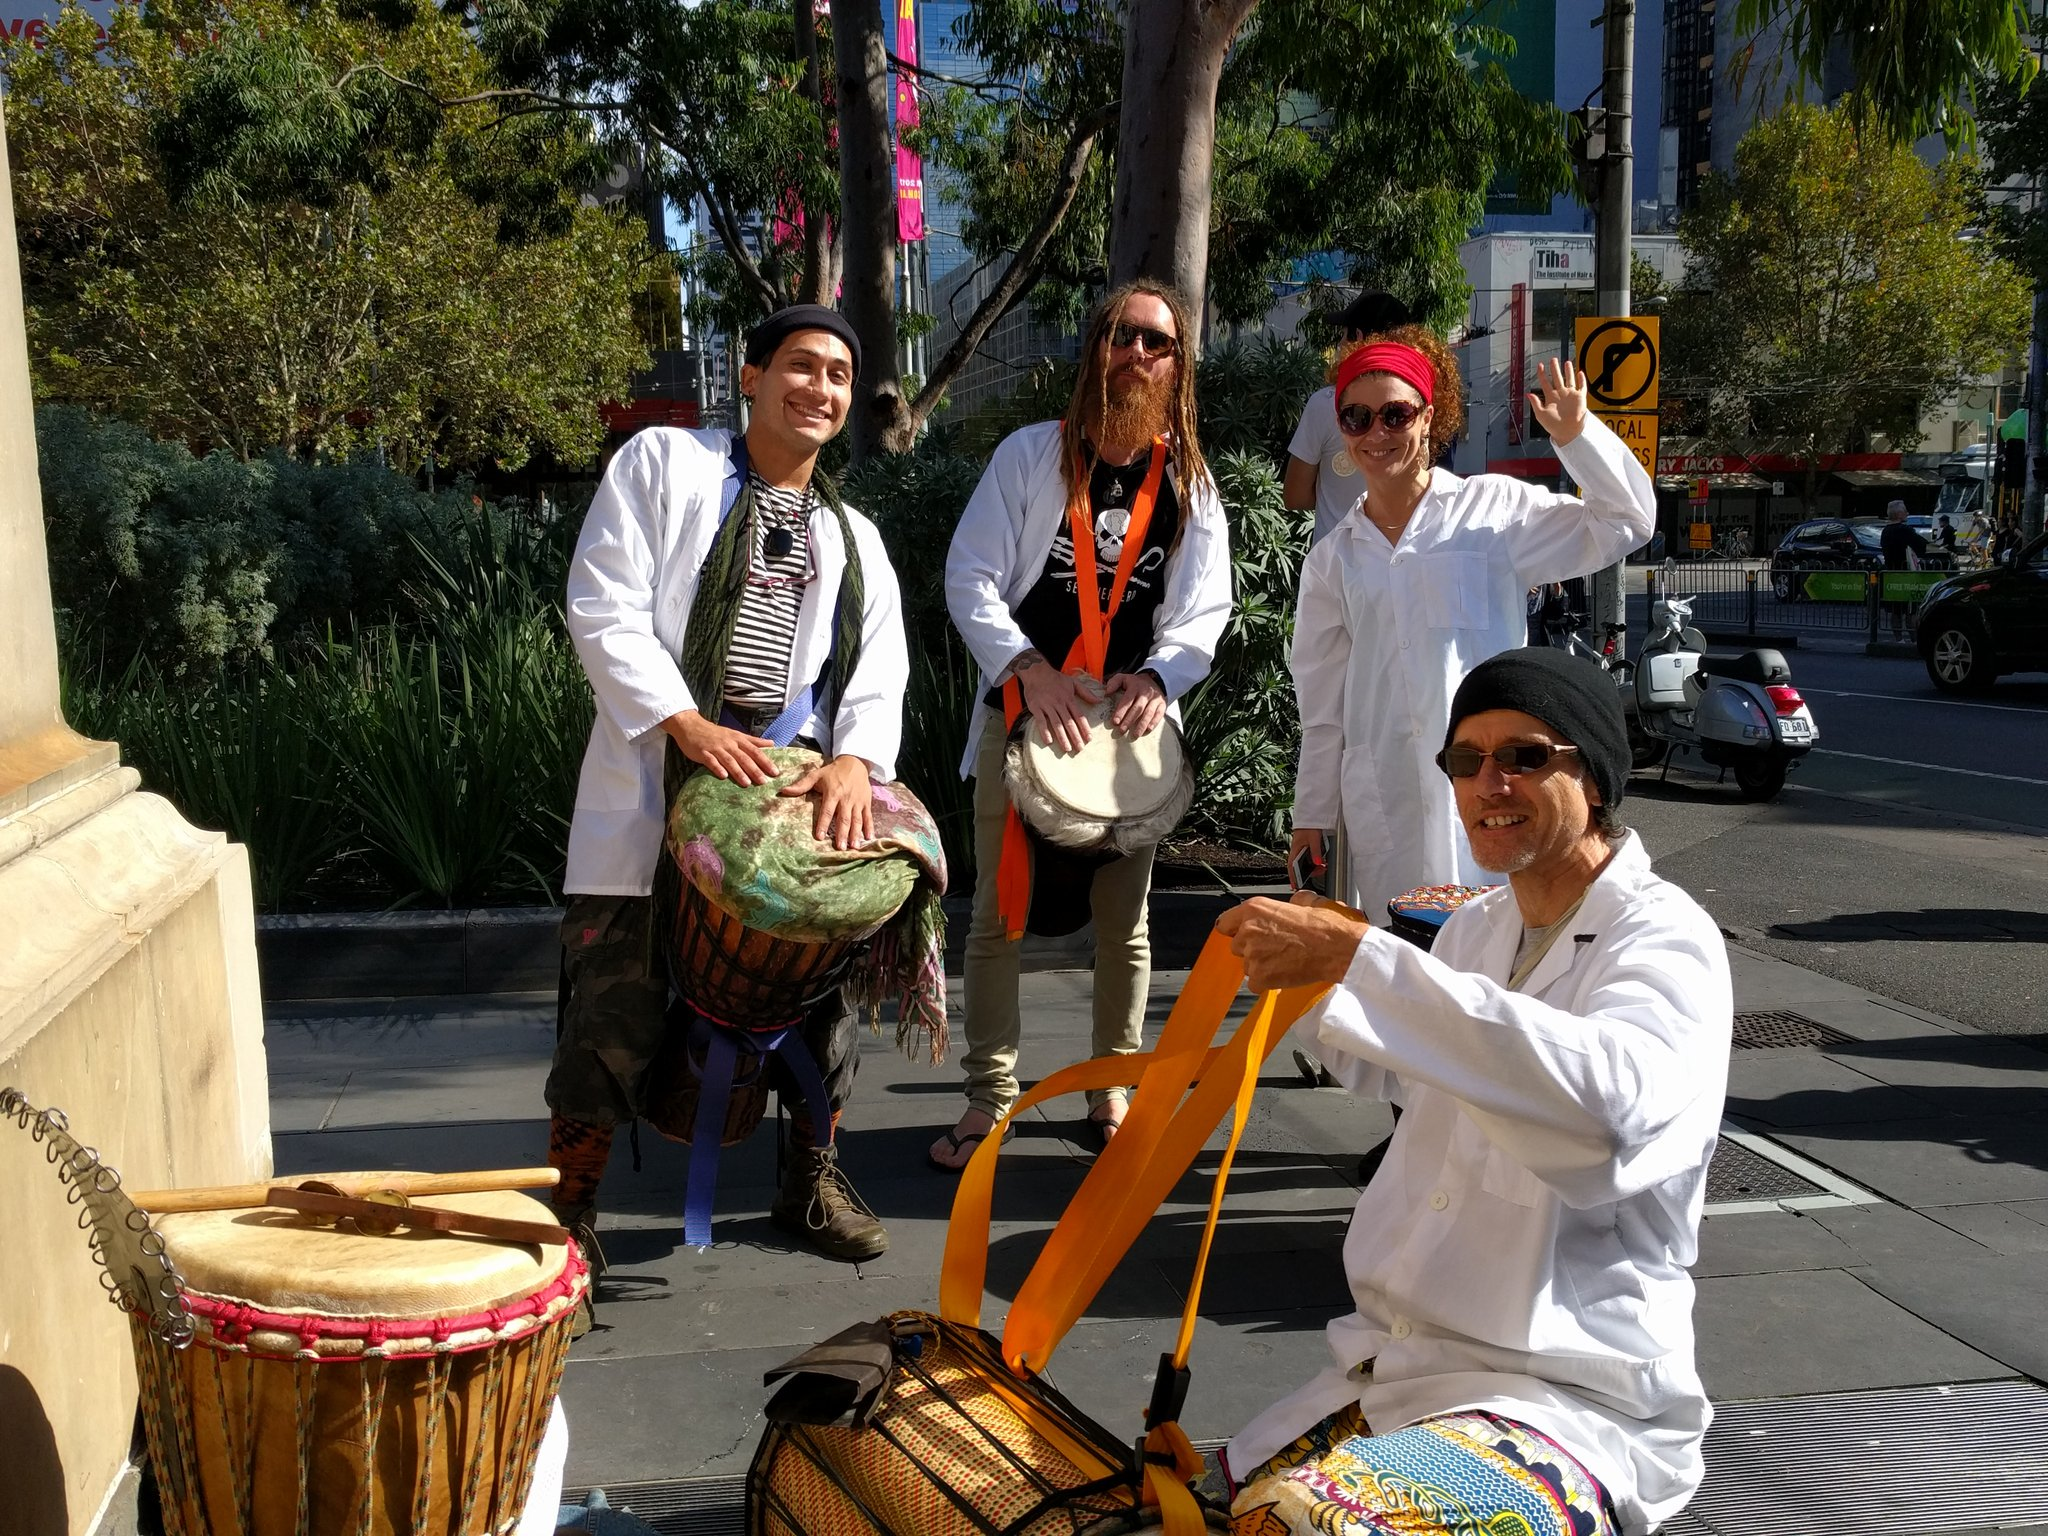 Melbourne Djembe marching and drumming at #marchforscience #Melbourne https://t.co/31poY2ZdeW